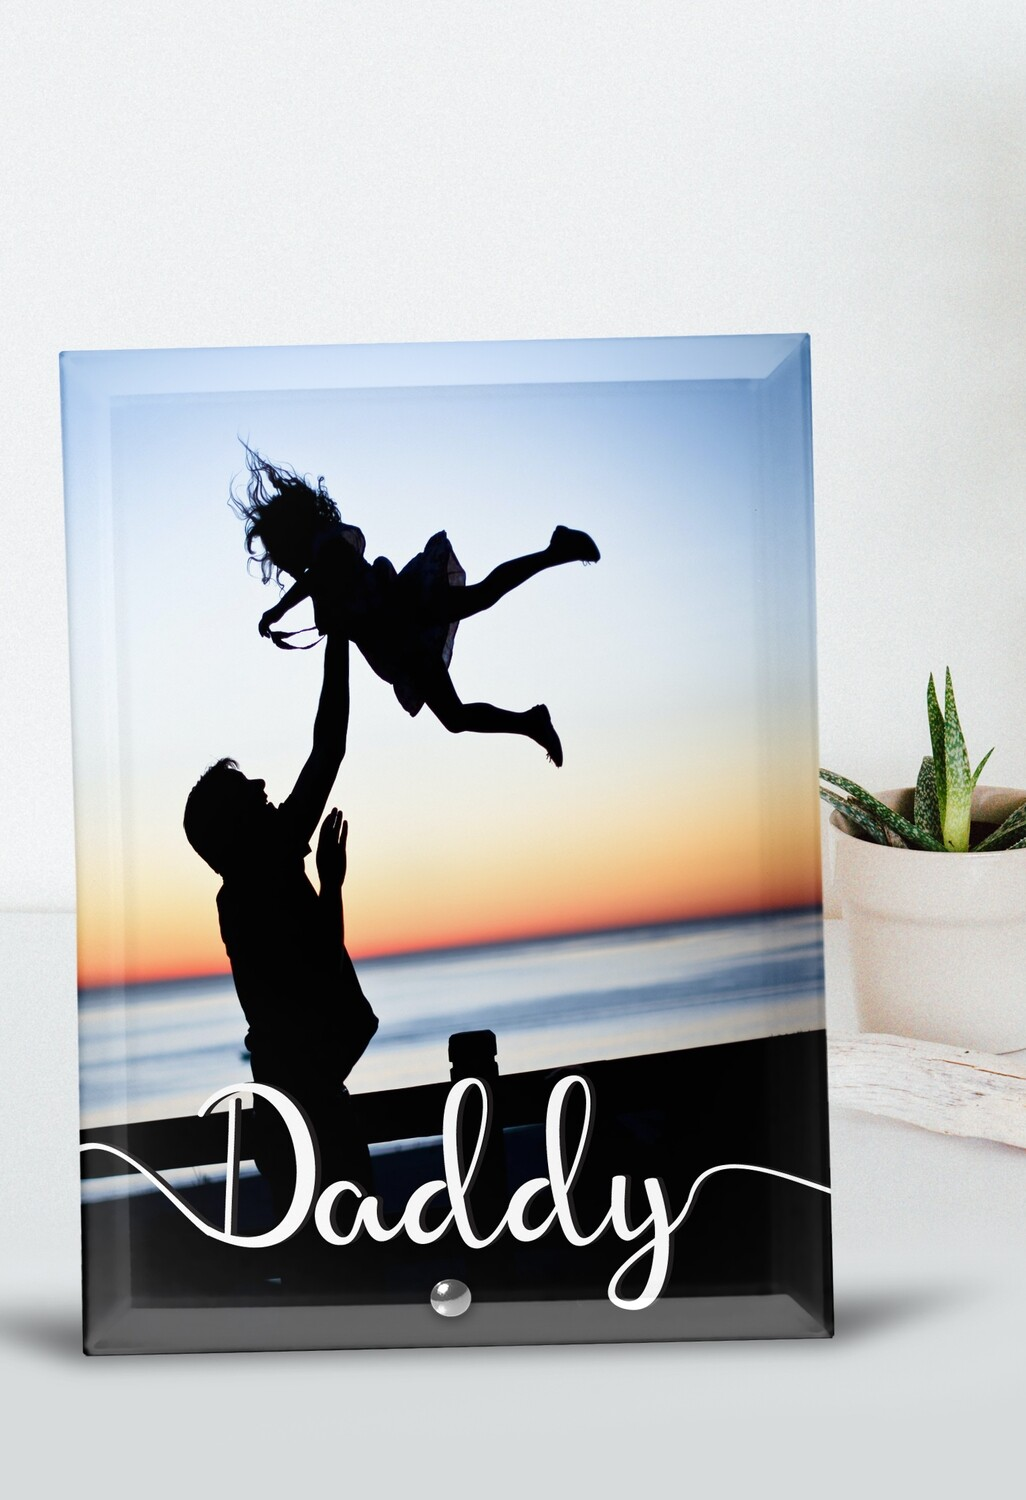 Personalized Daddy Glass Tile